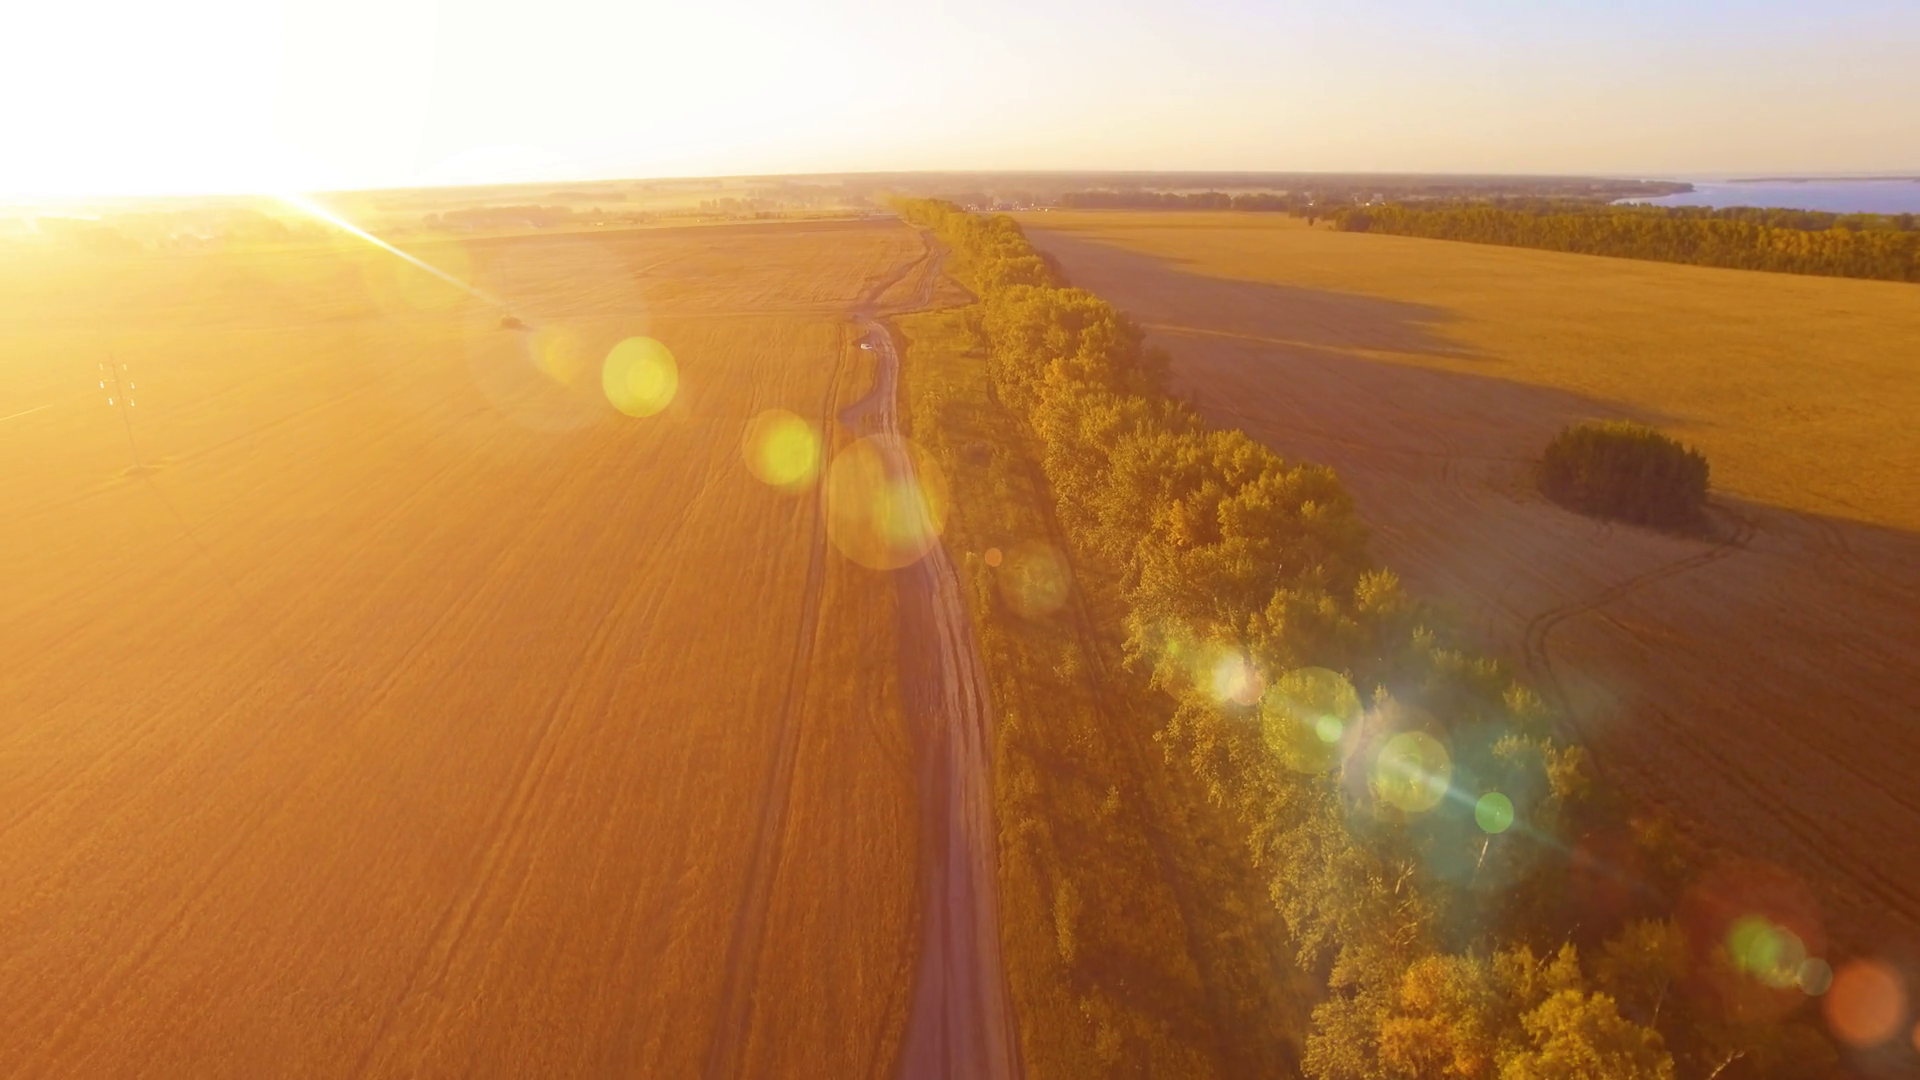 UHD 4K aerial view. Low flight over tree line and yellow wheat rural ...